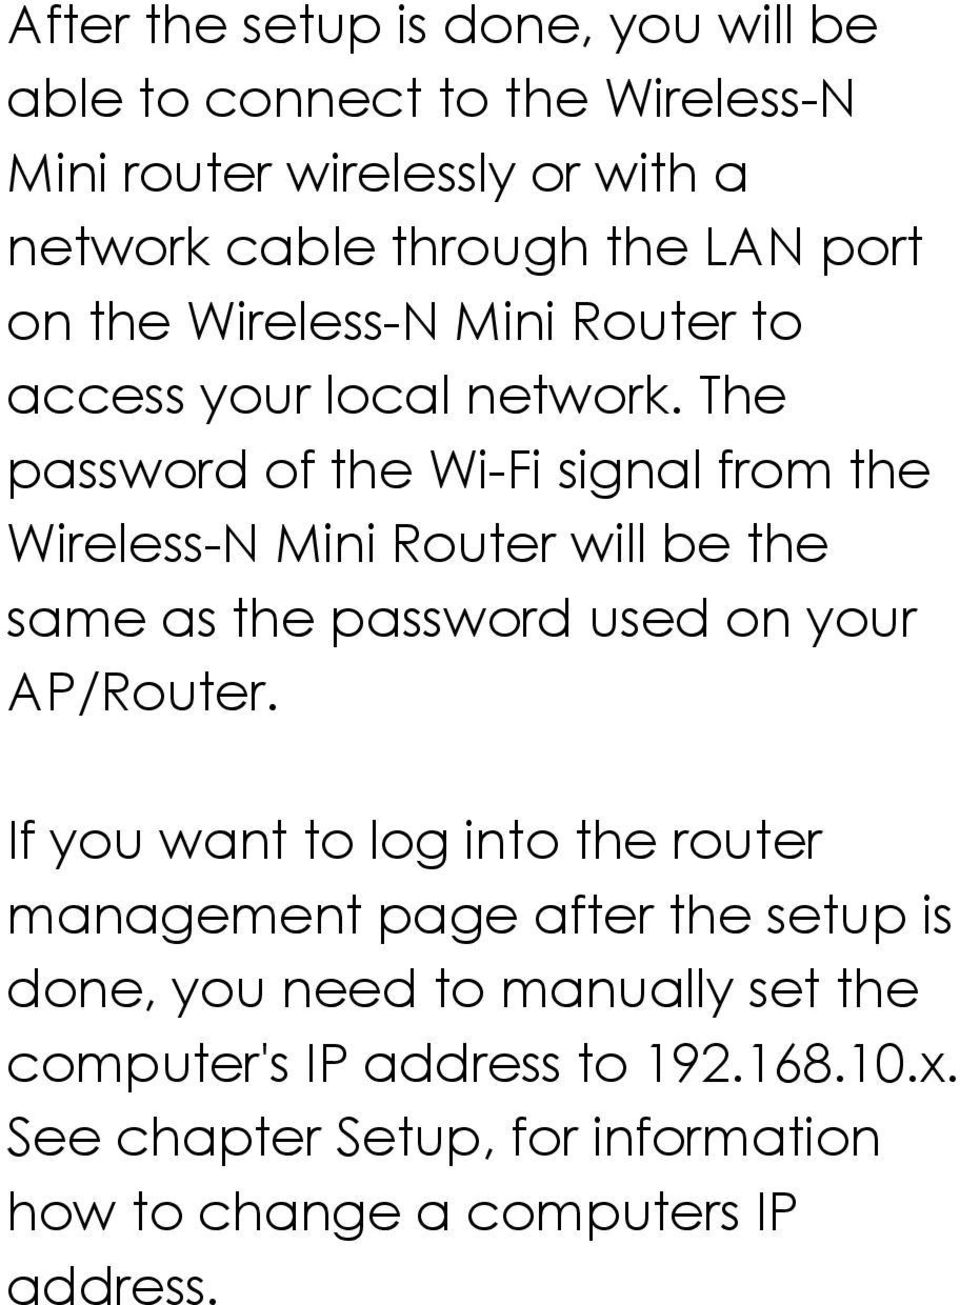 The password of the Wi-Fi signal from the Wireless-N Mini Router will be the same as the password used on your AP/Router.